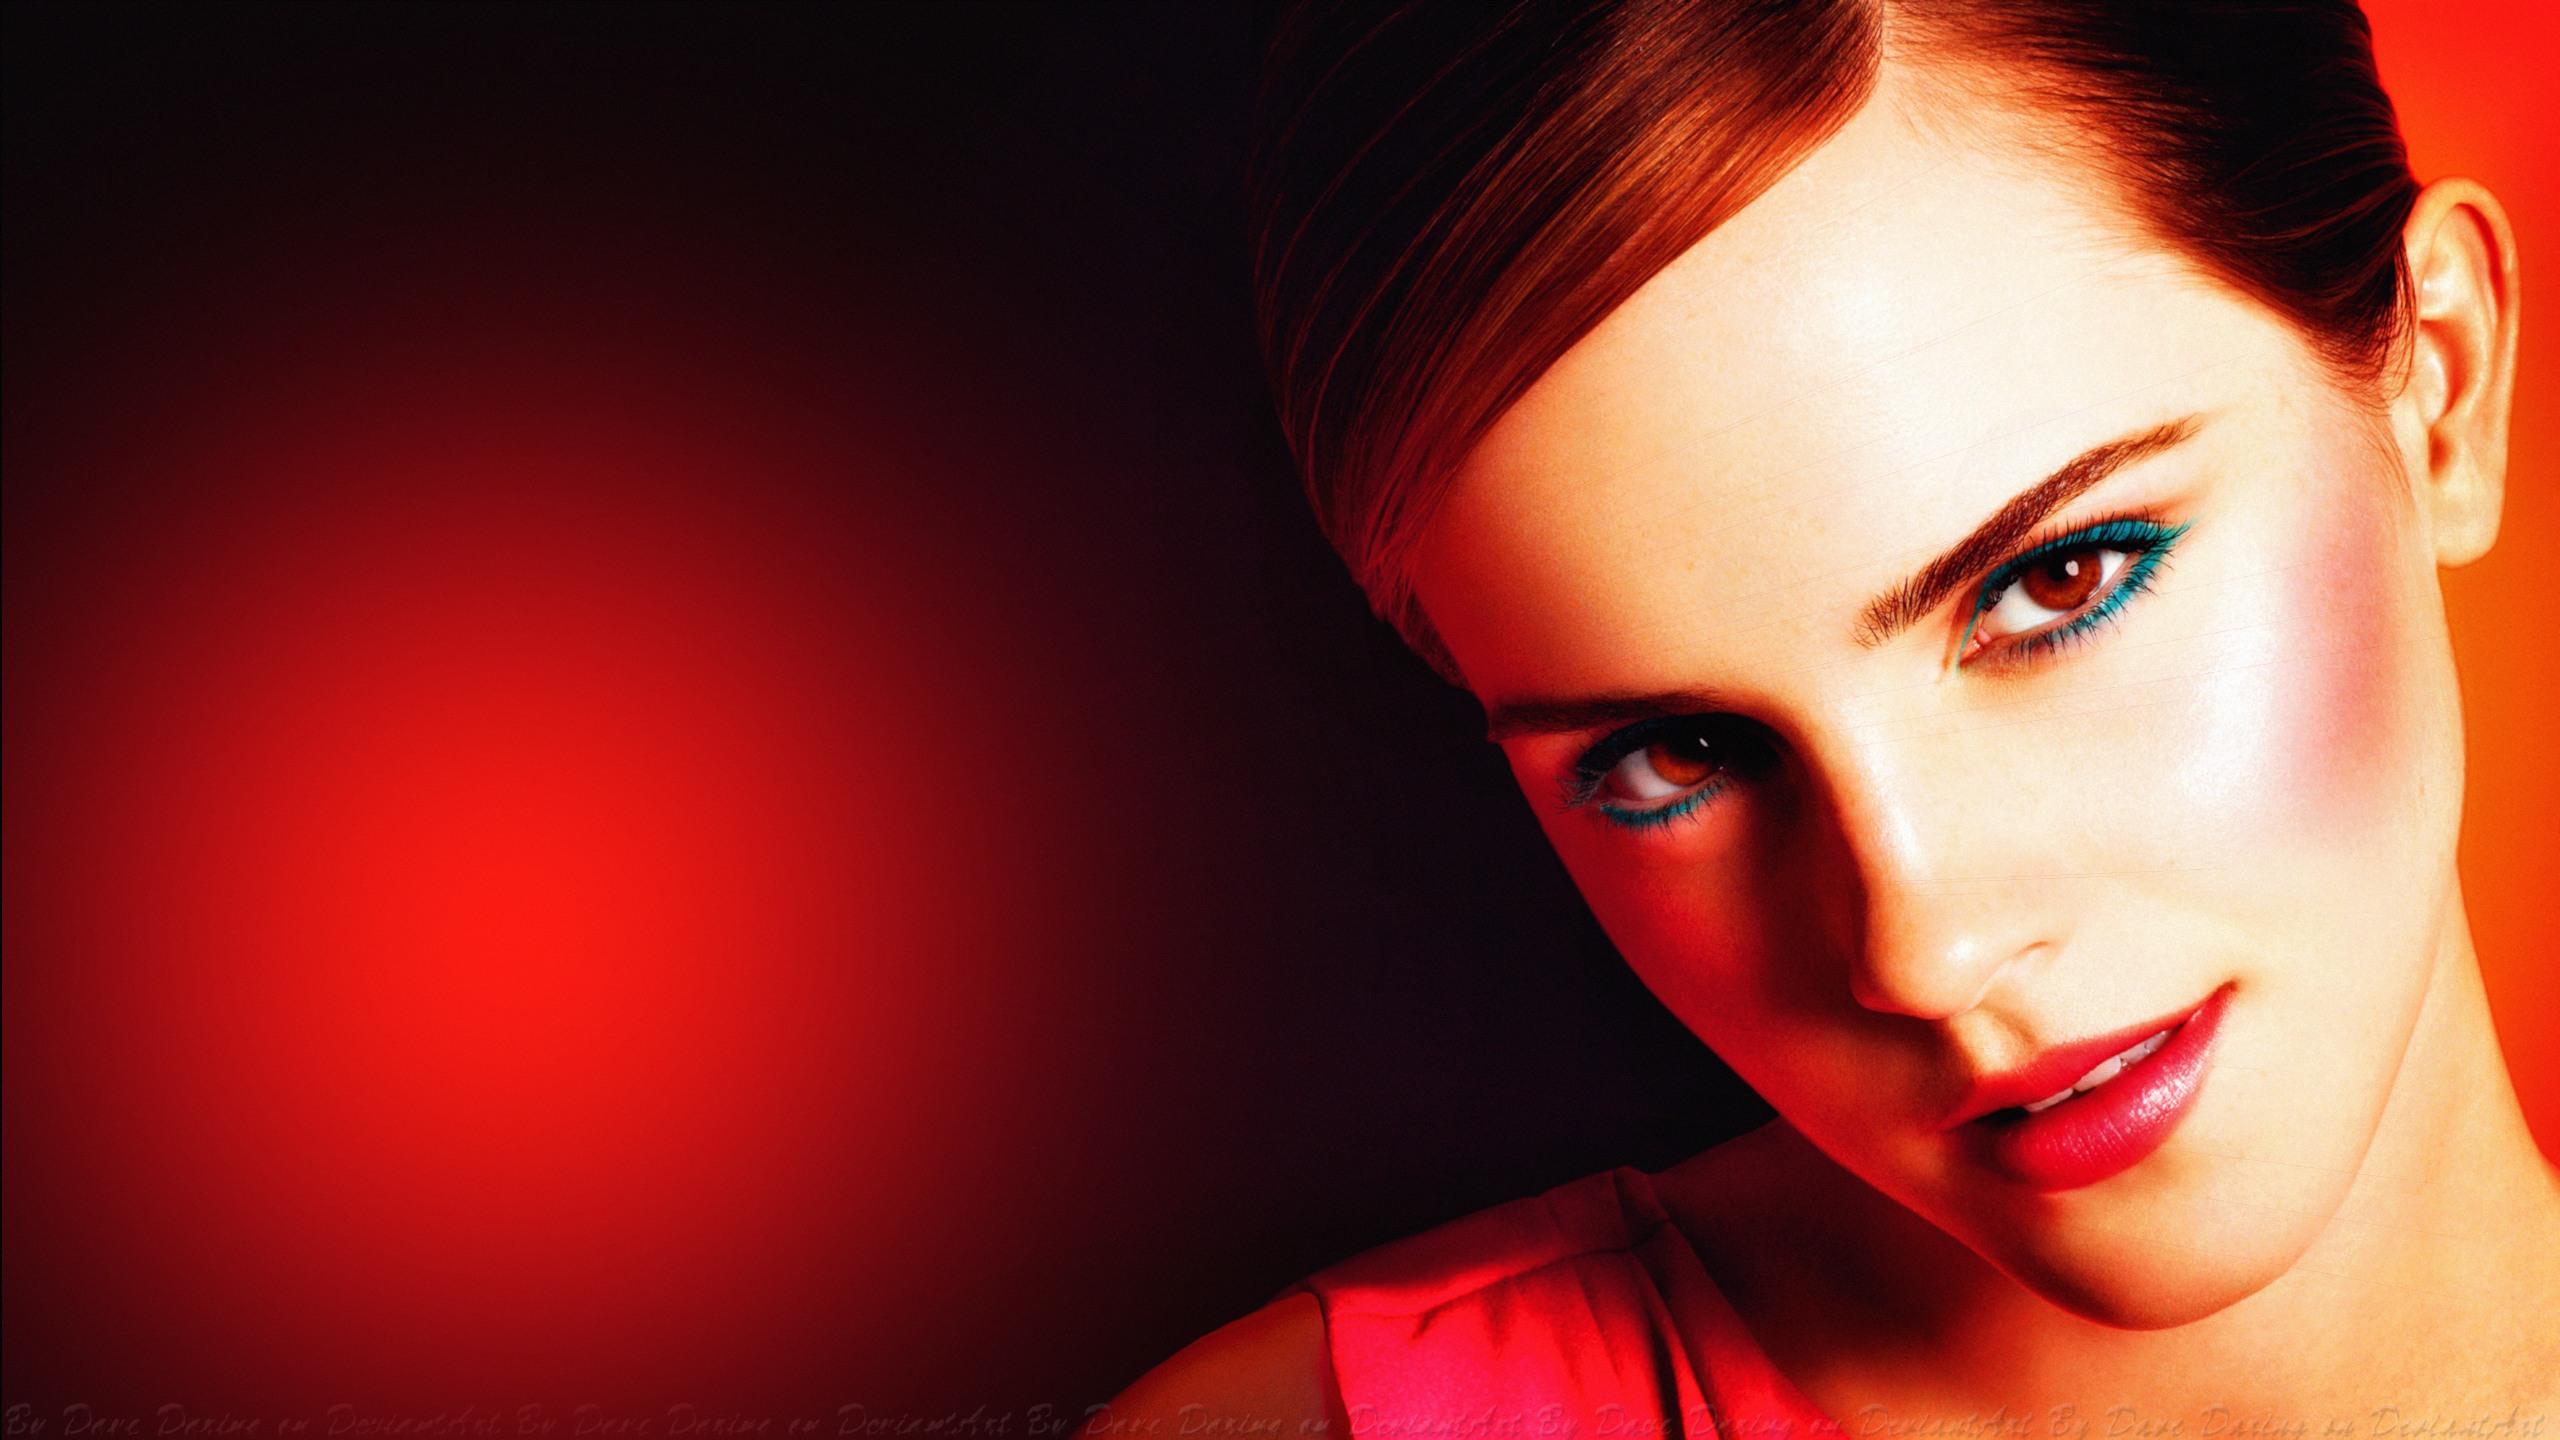 Love The End Wallpaper : Emma Watson Wallpaper -02 - Gotceleb